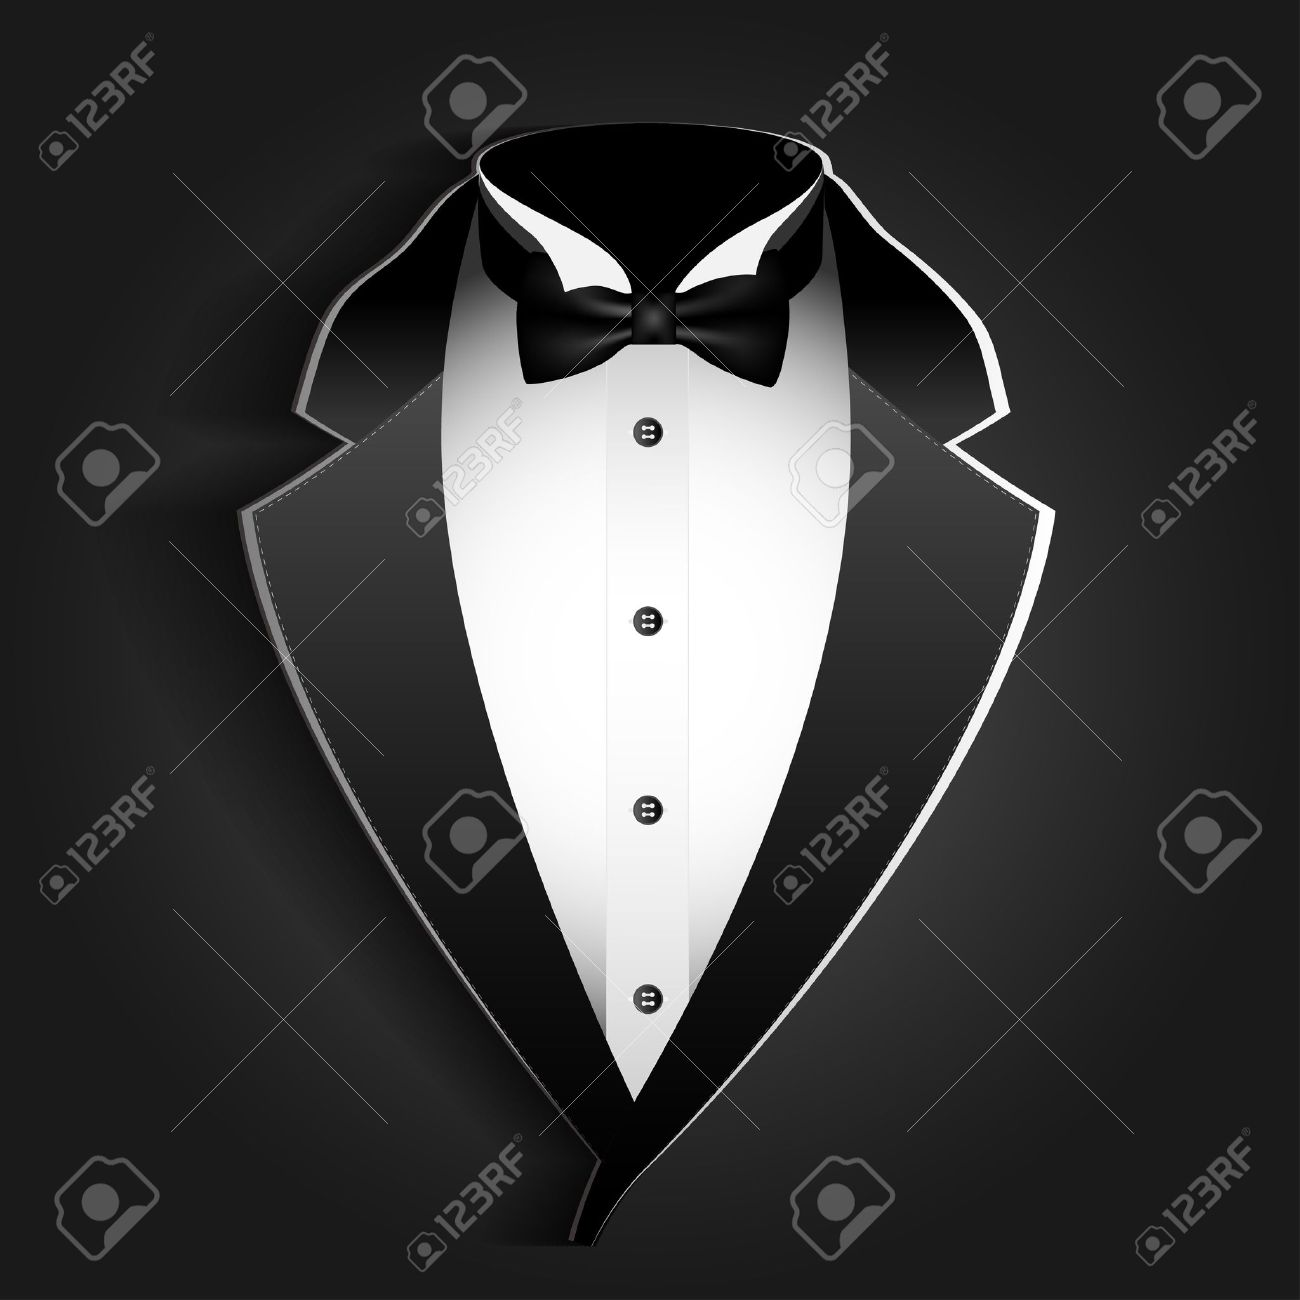 15,330 Bow Tie Cliparts, Stock Vector And Royalty Free Bow Tie.